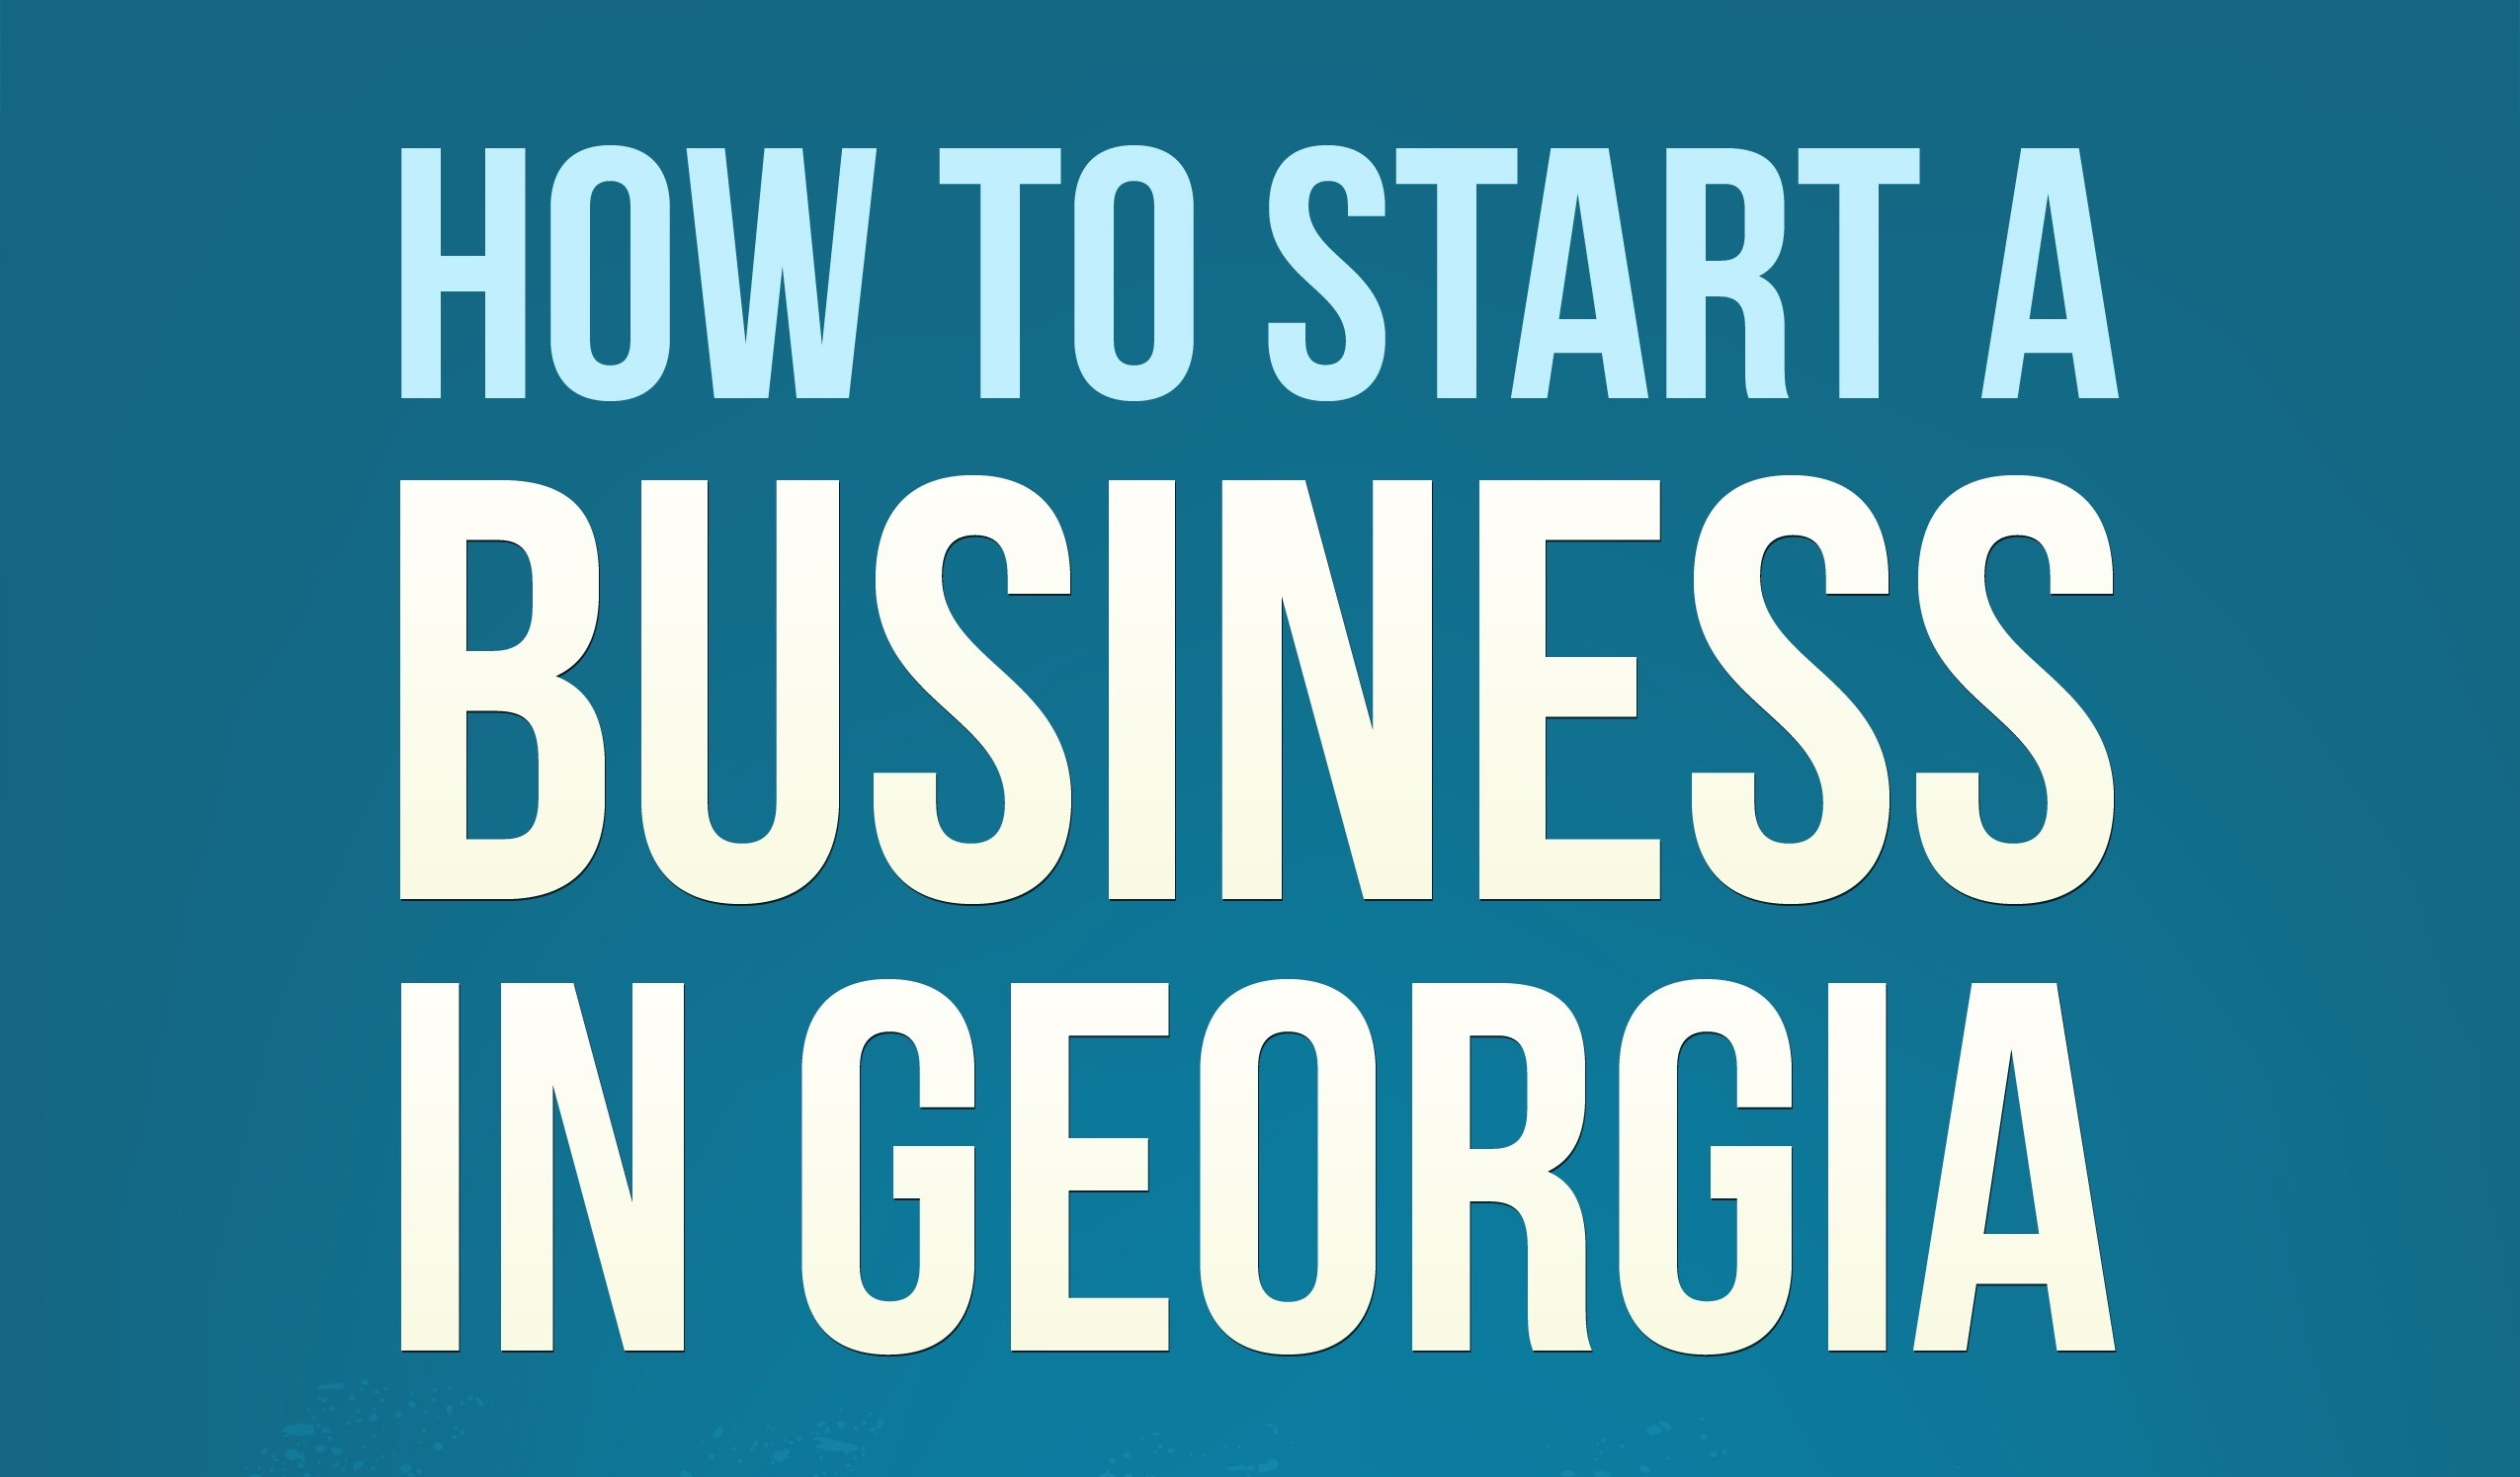 UGA'S SMALL BUSINESS DEVELOPMENT CENTER